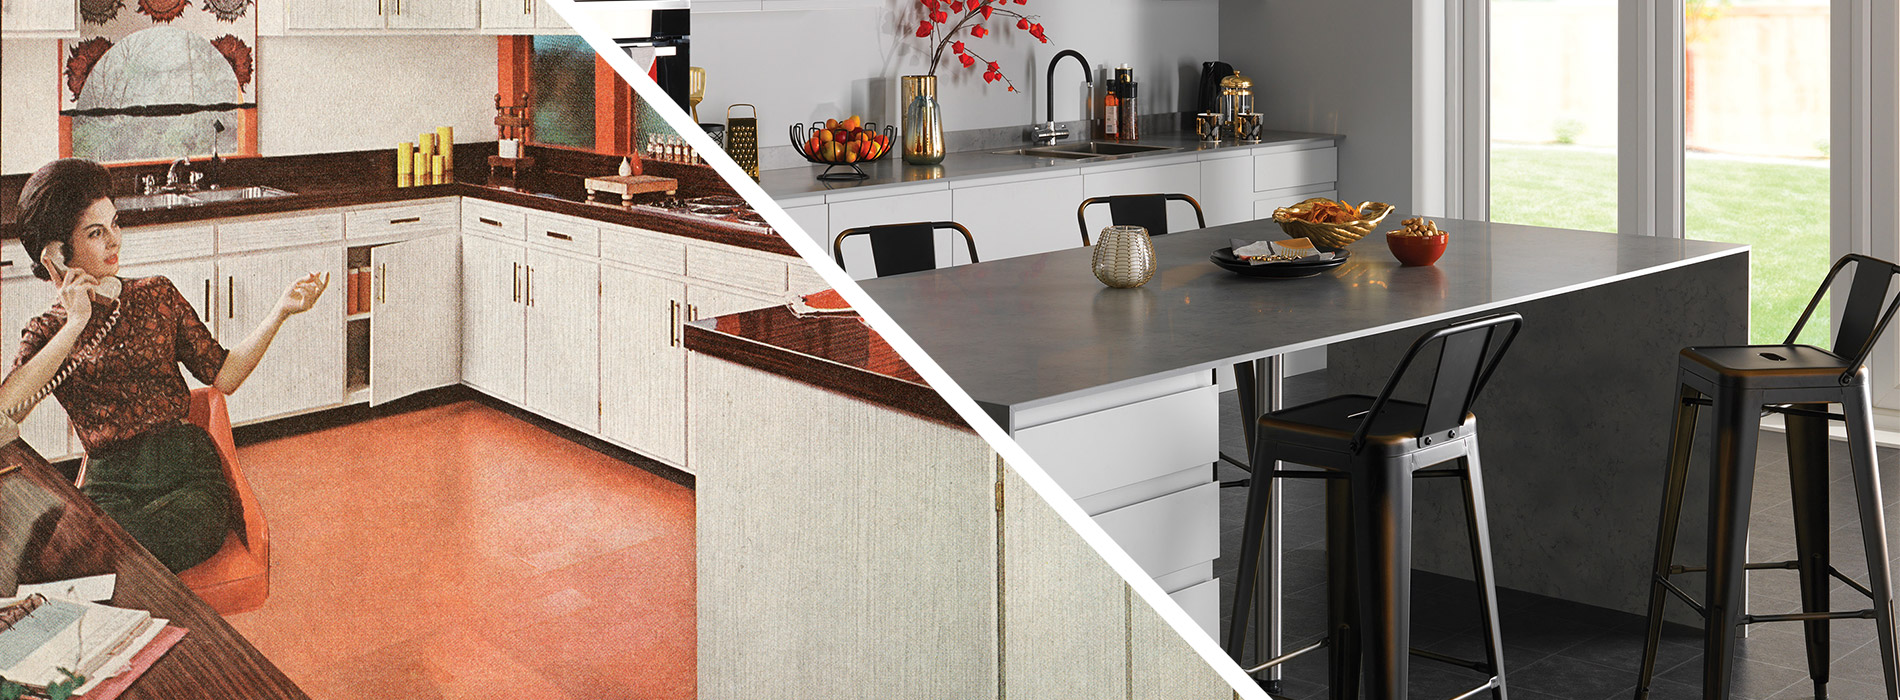 2019 kitchen report header 1900x700